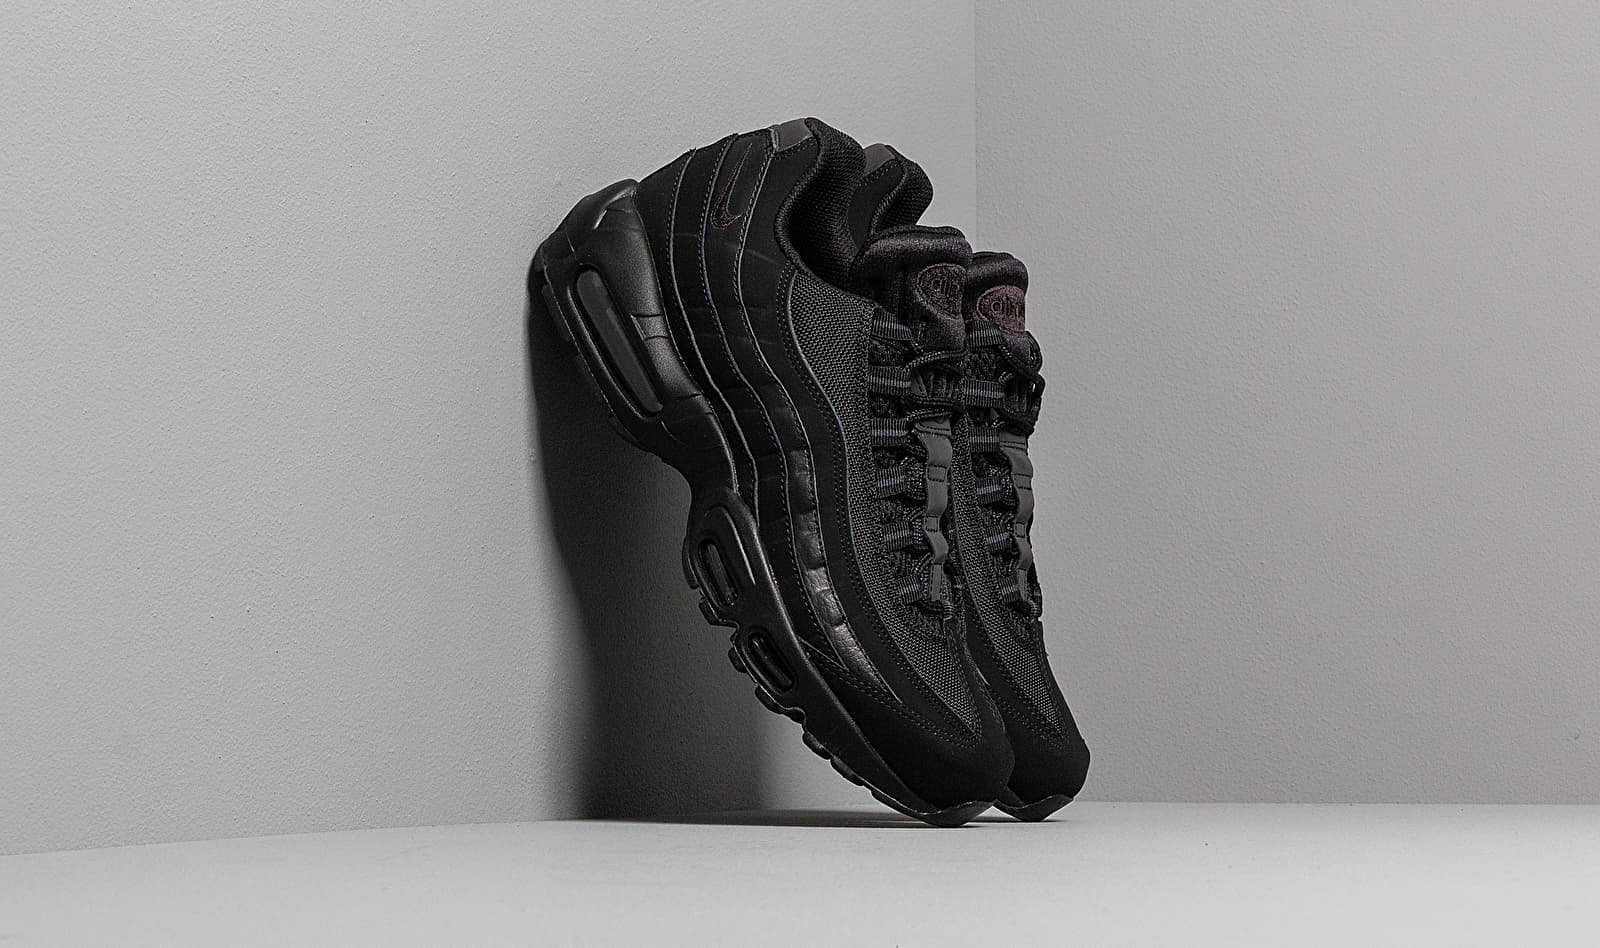 Nike Air Max 95 Black/ Black-Anthracite EUR 44